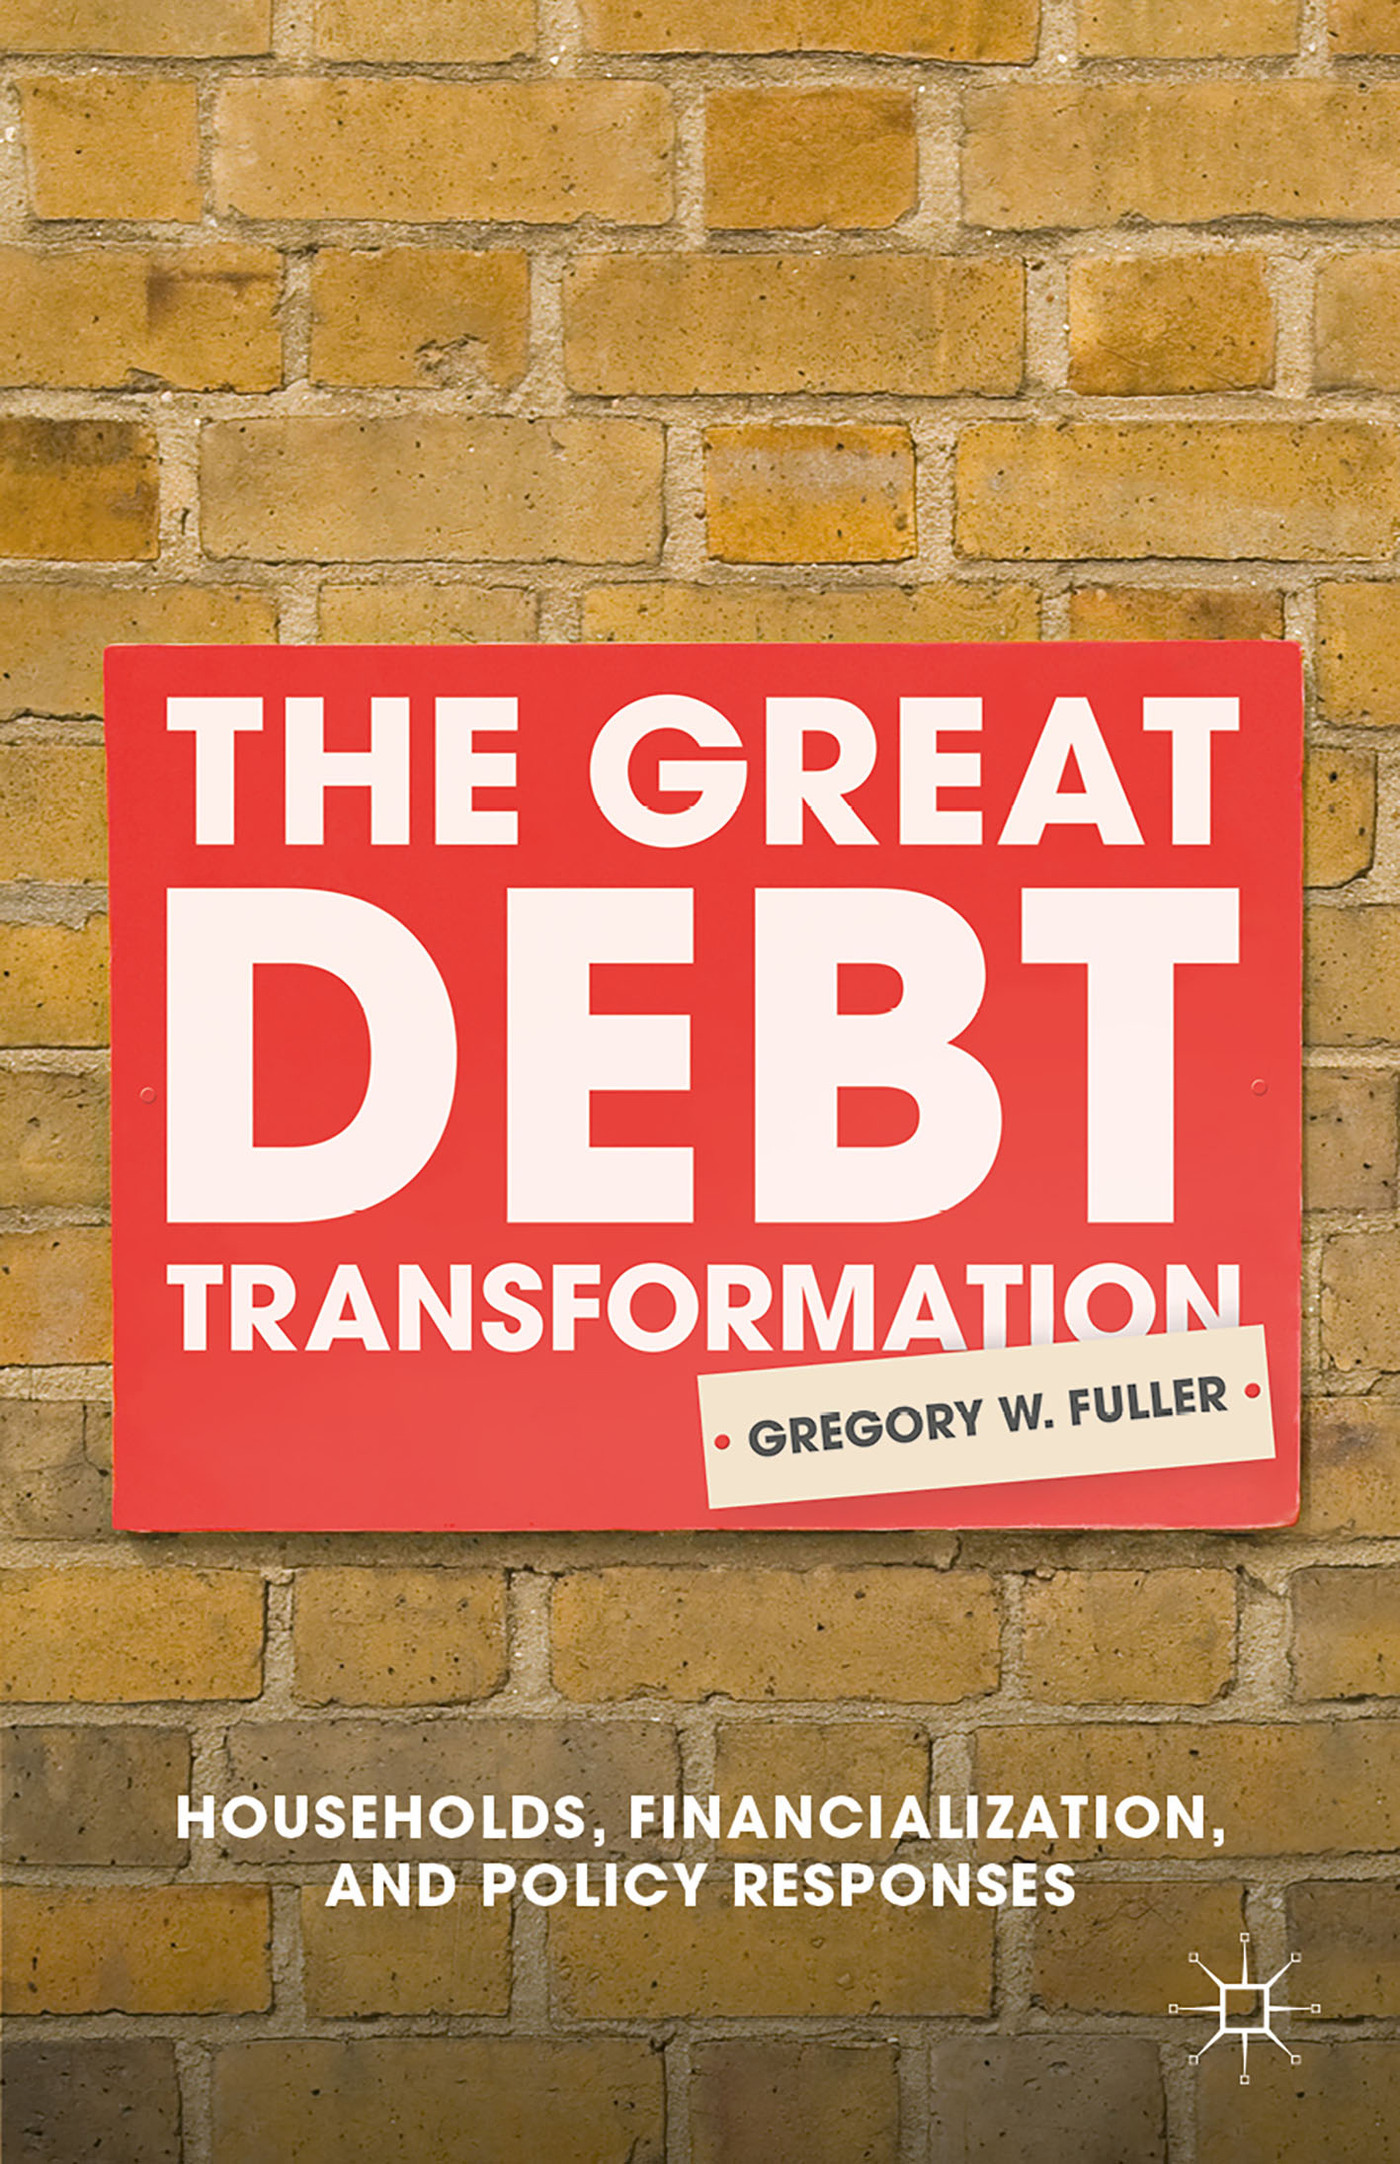 The Great Debt Transformation: Households, Financialization, and Policy Responses Gregory W. Fuller